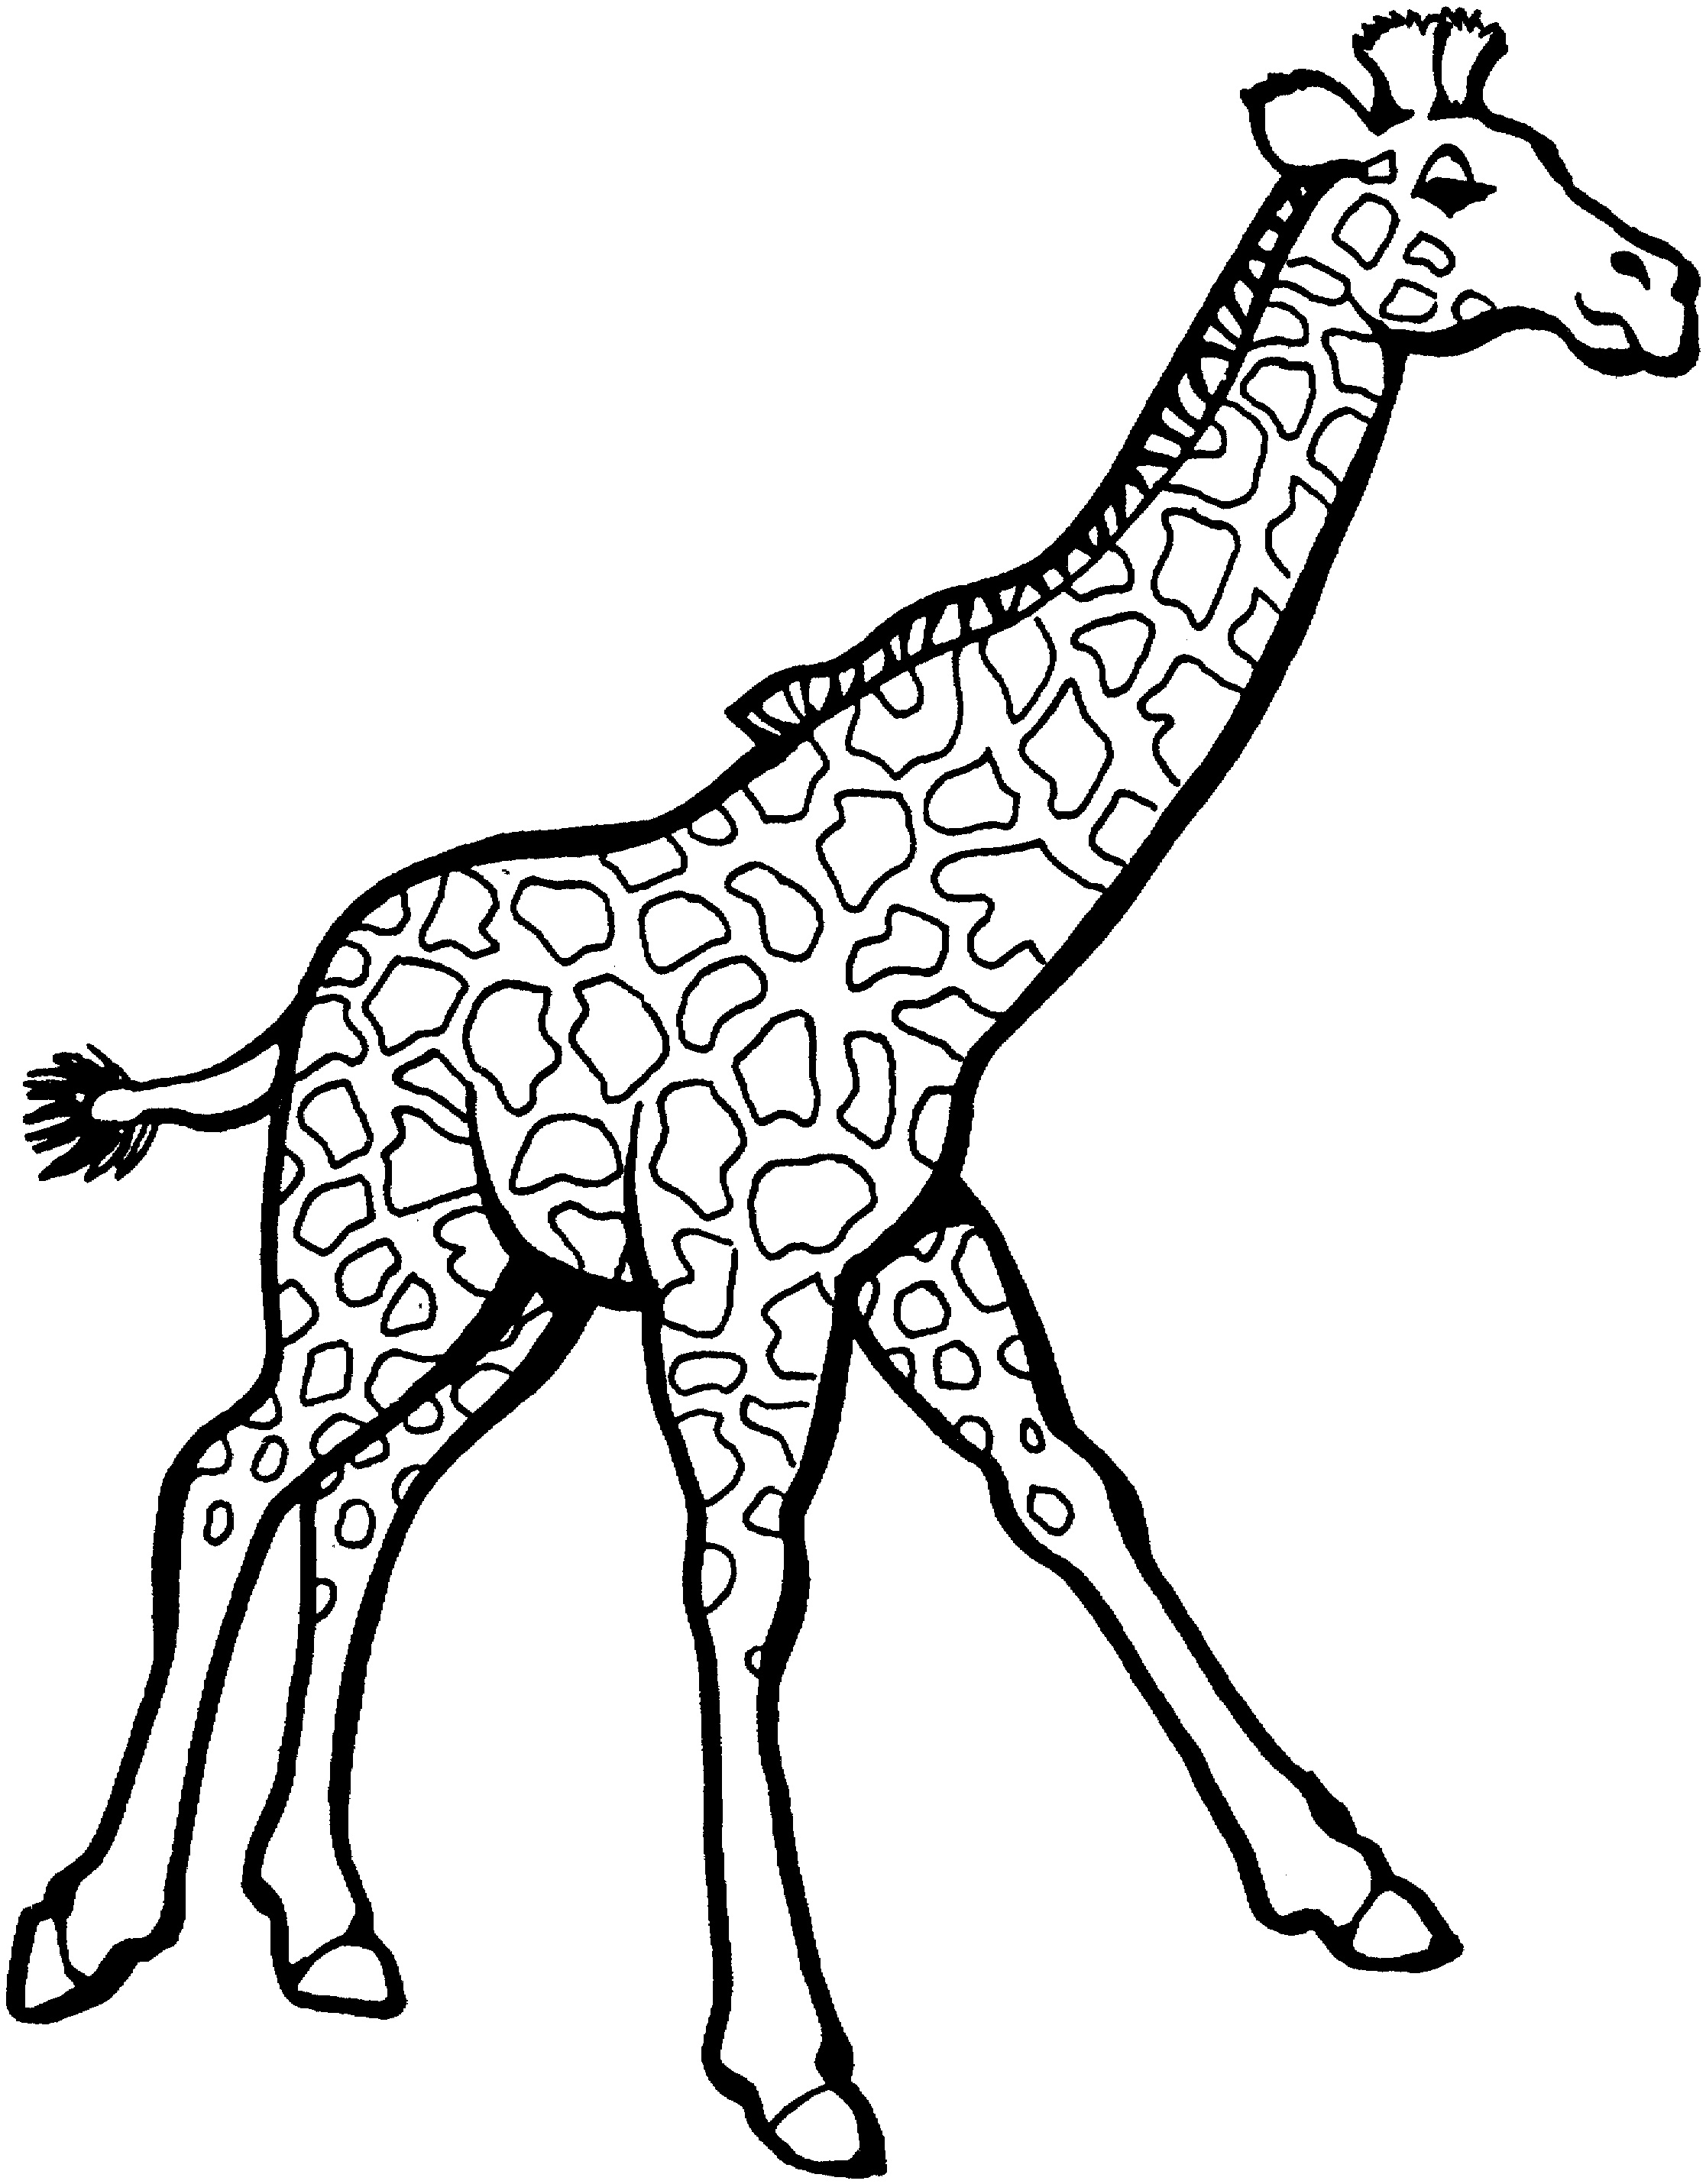 2233x2859 Coloring Pages Giraffe Colouring Page